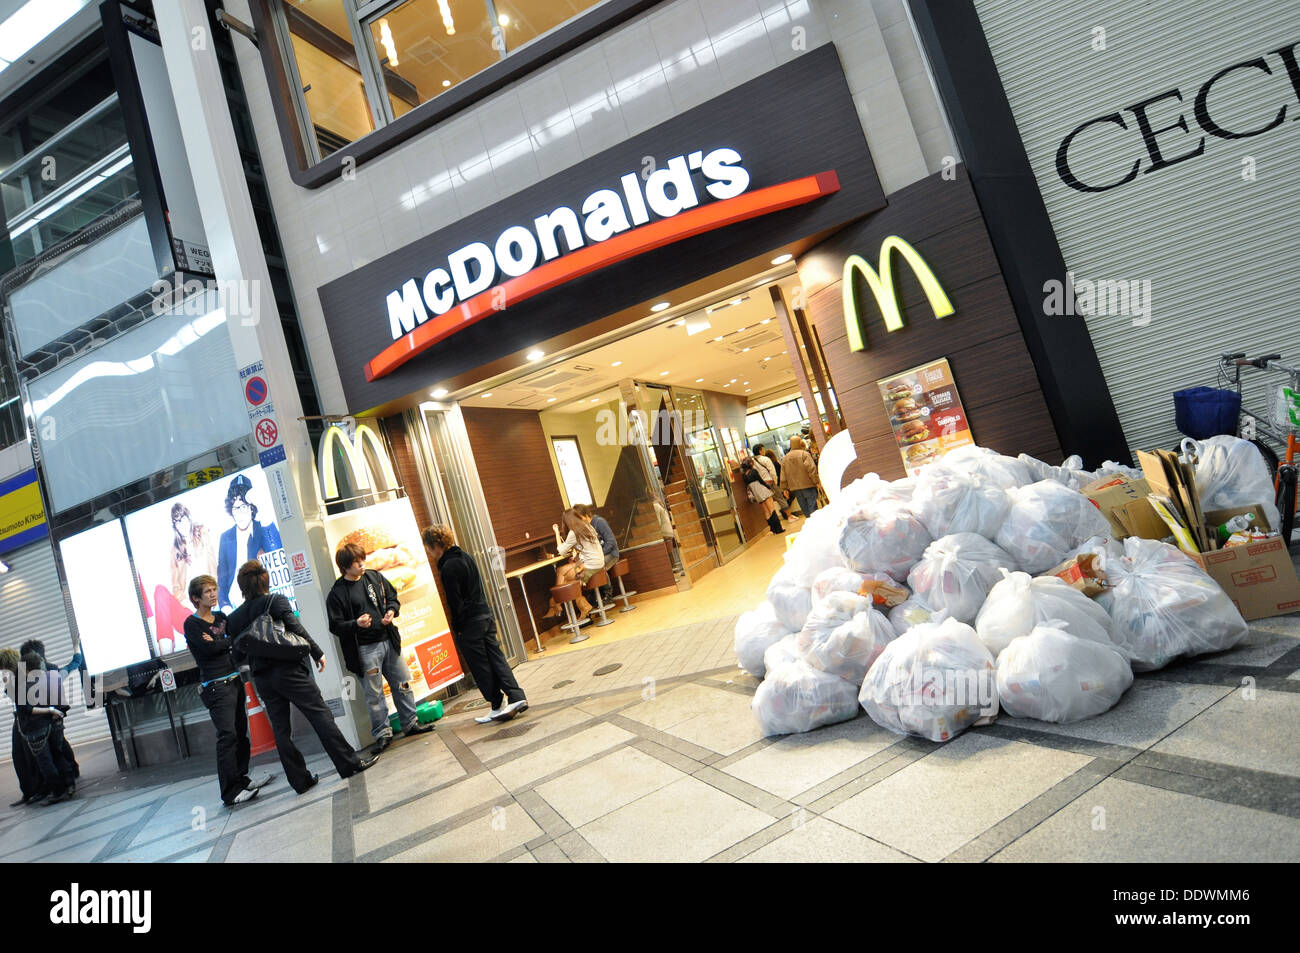 A McDonald's fast food restaurant with a lot of garbage piled up outside. - Stock Image